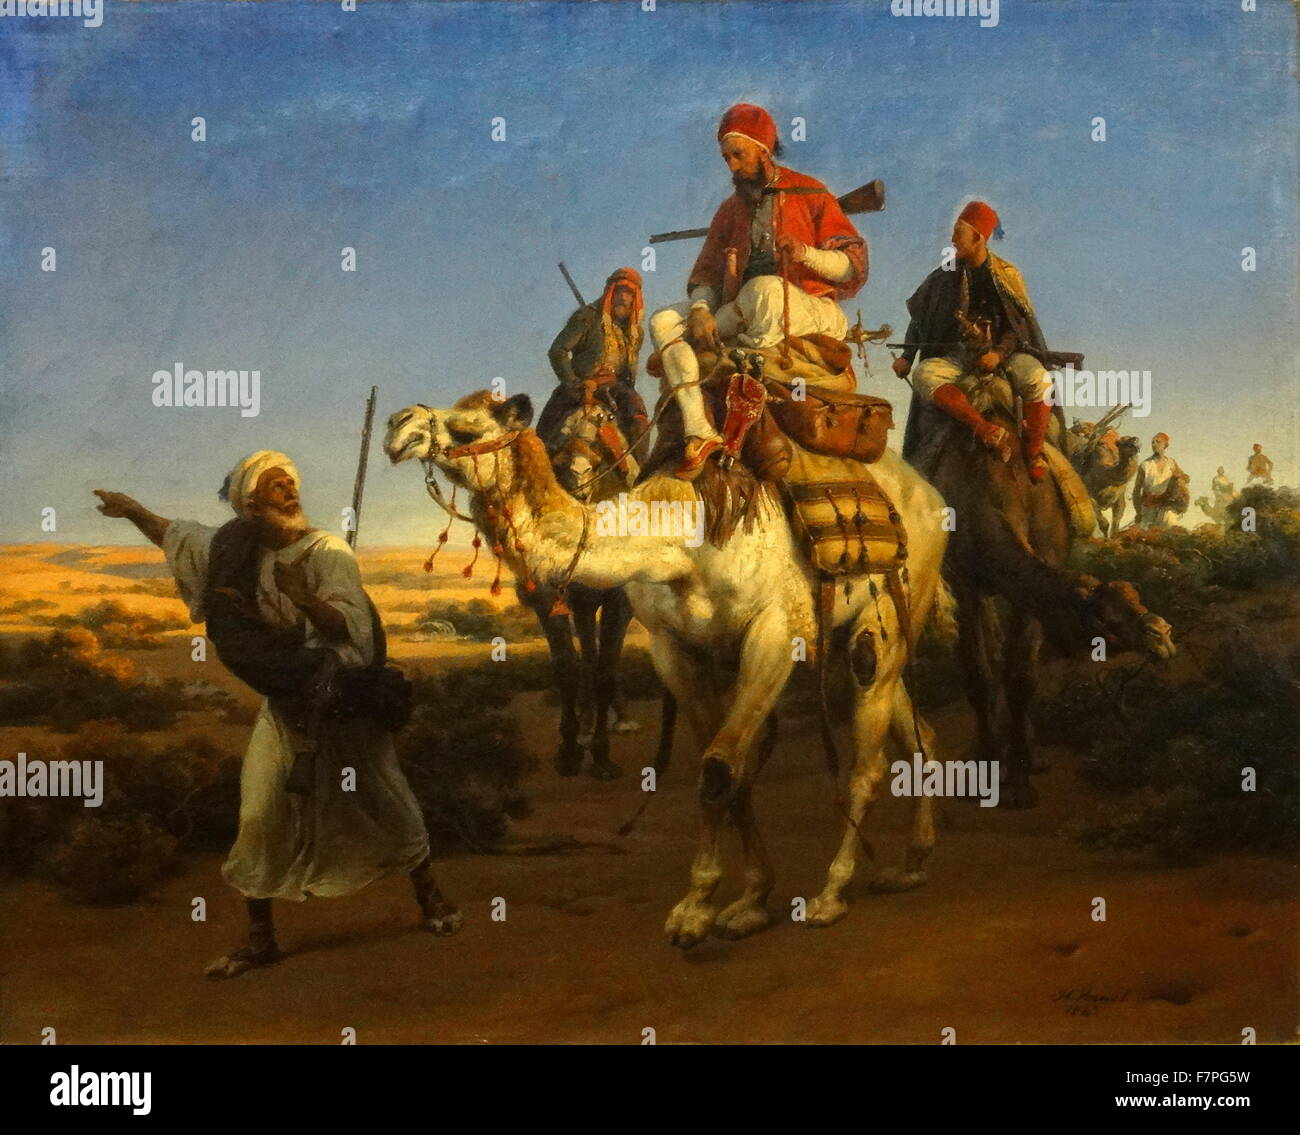 Arabs Travelling in the Desert by Horace Vernet (1789-1863) - Stock Image